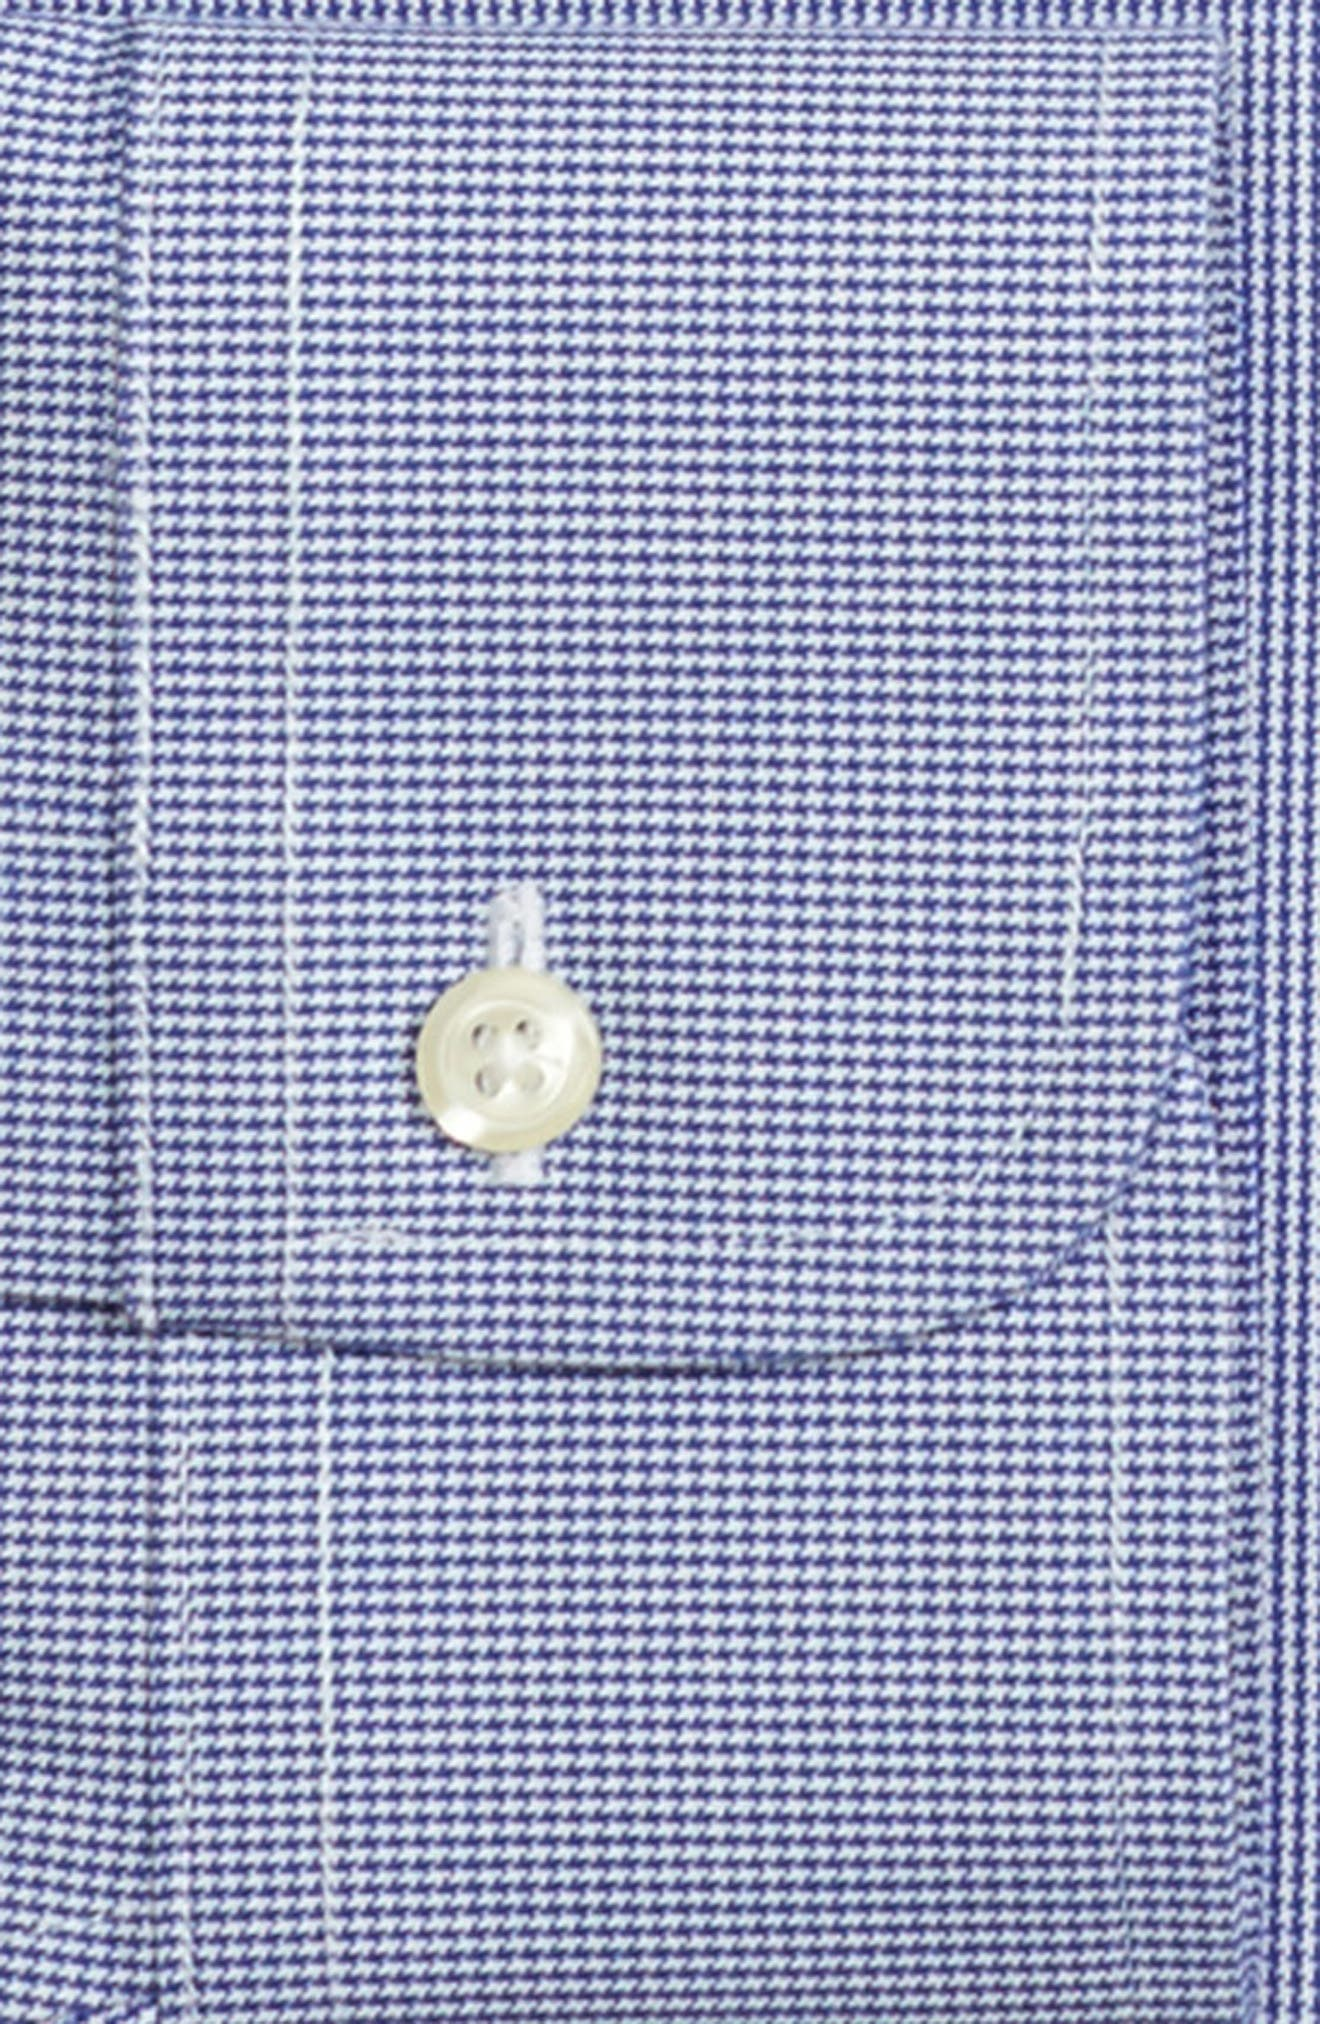 Classic Fit Houndstooth Dress Shirt,                             Alternate thumbnail 2, color,                             BLUE